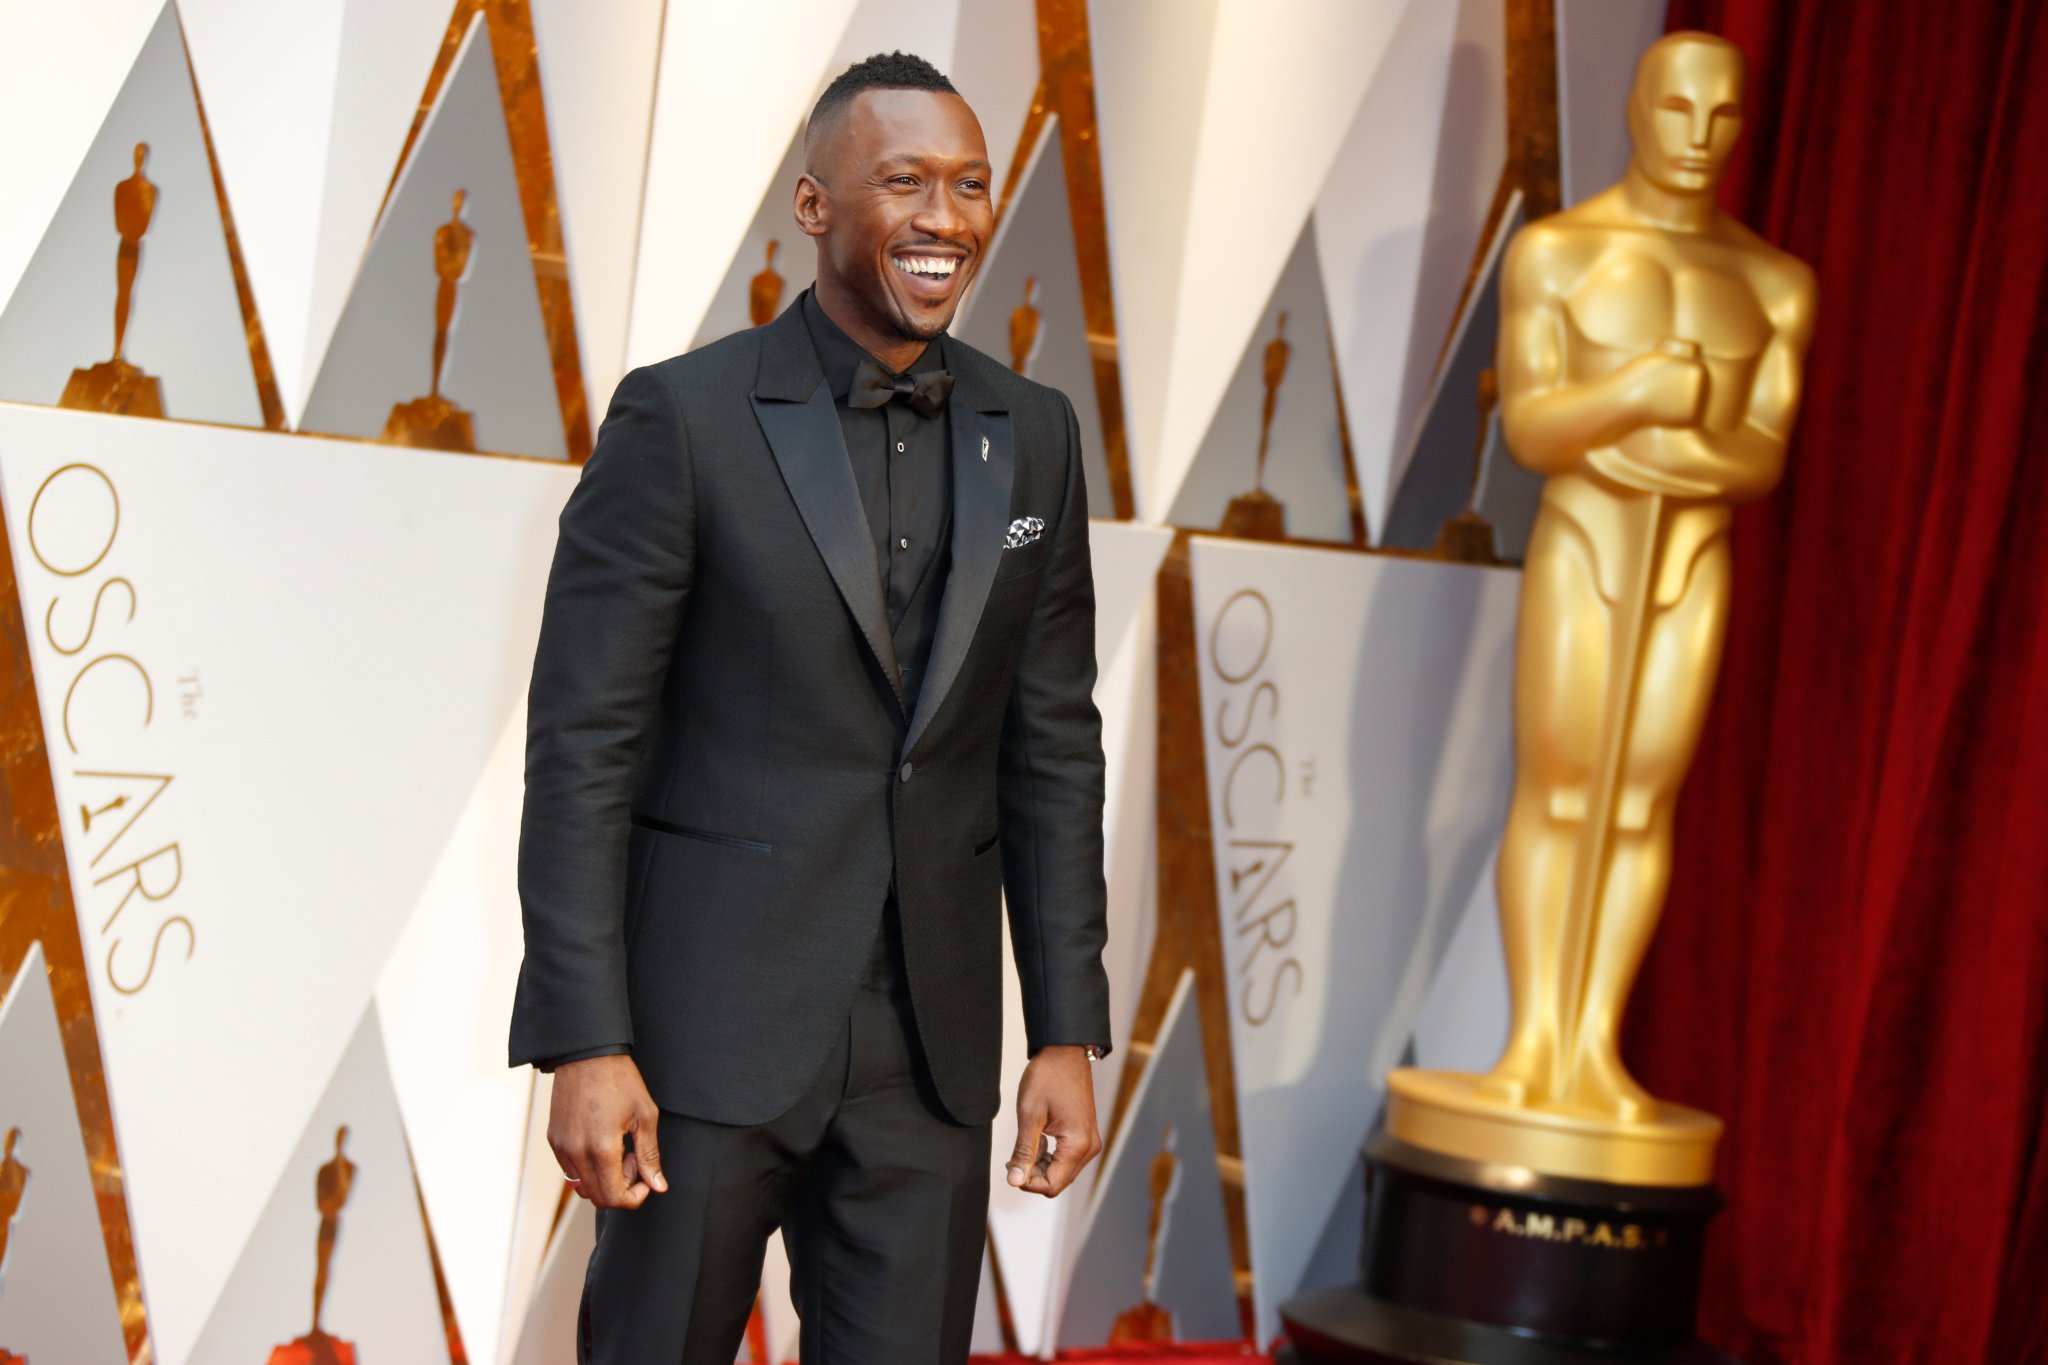 """At the #Oscars, """"Moonlight's"""" Mahershala Ali wins for supporting actor https://t.co/rHYWESnVaj https://t.co/vXY5AOahwI"""